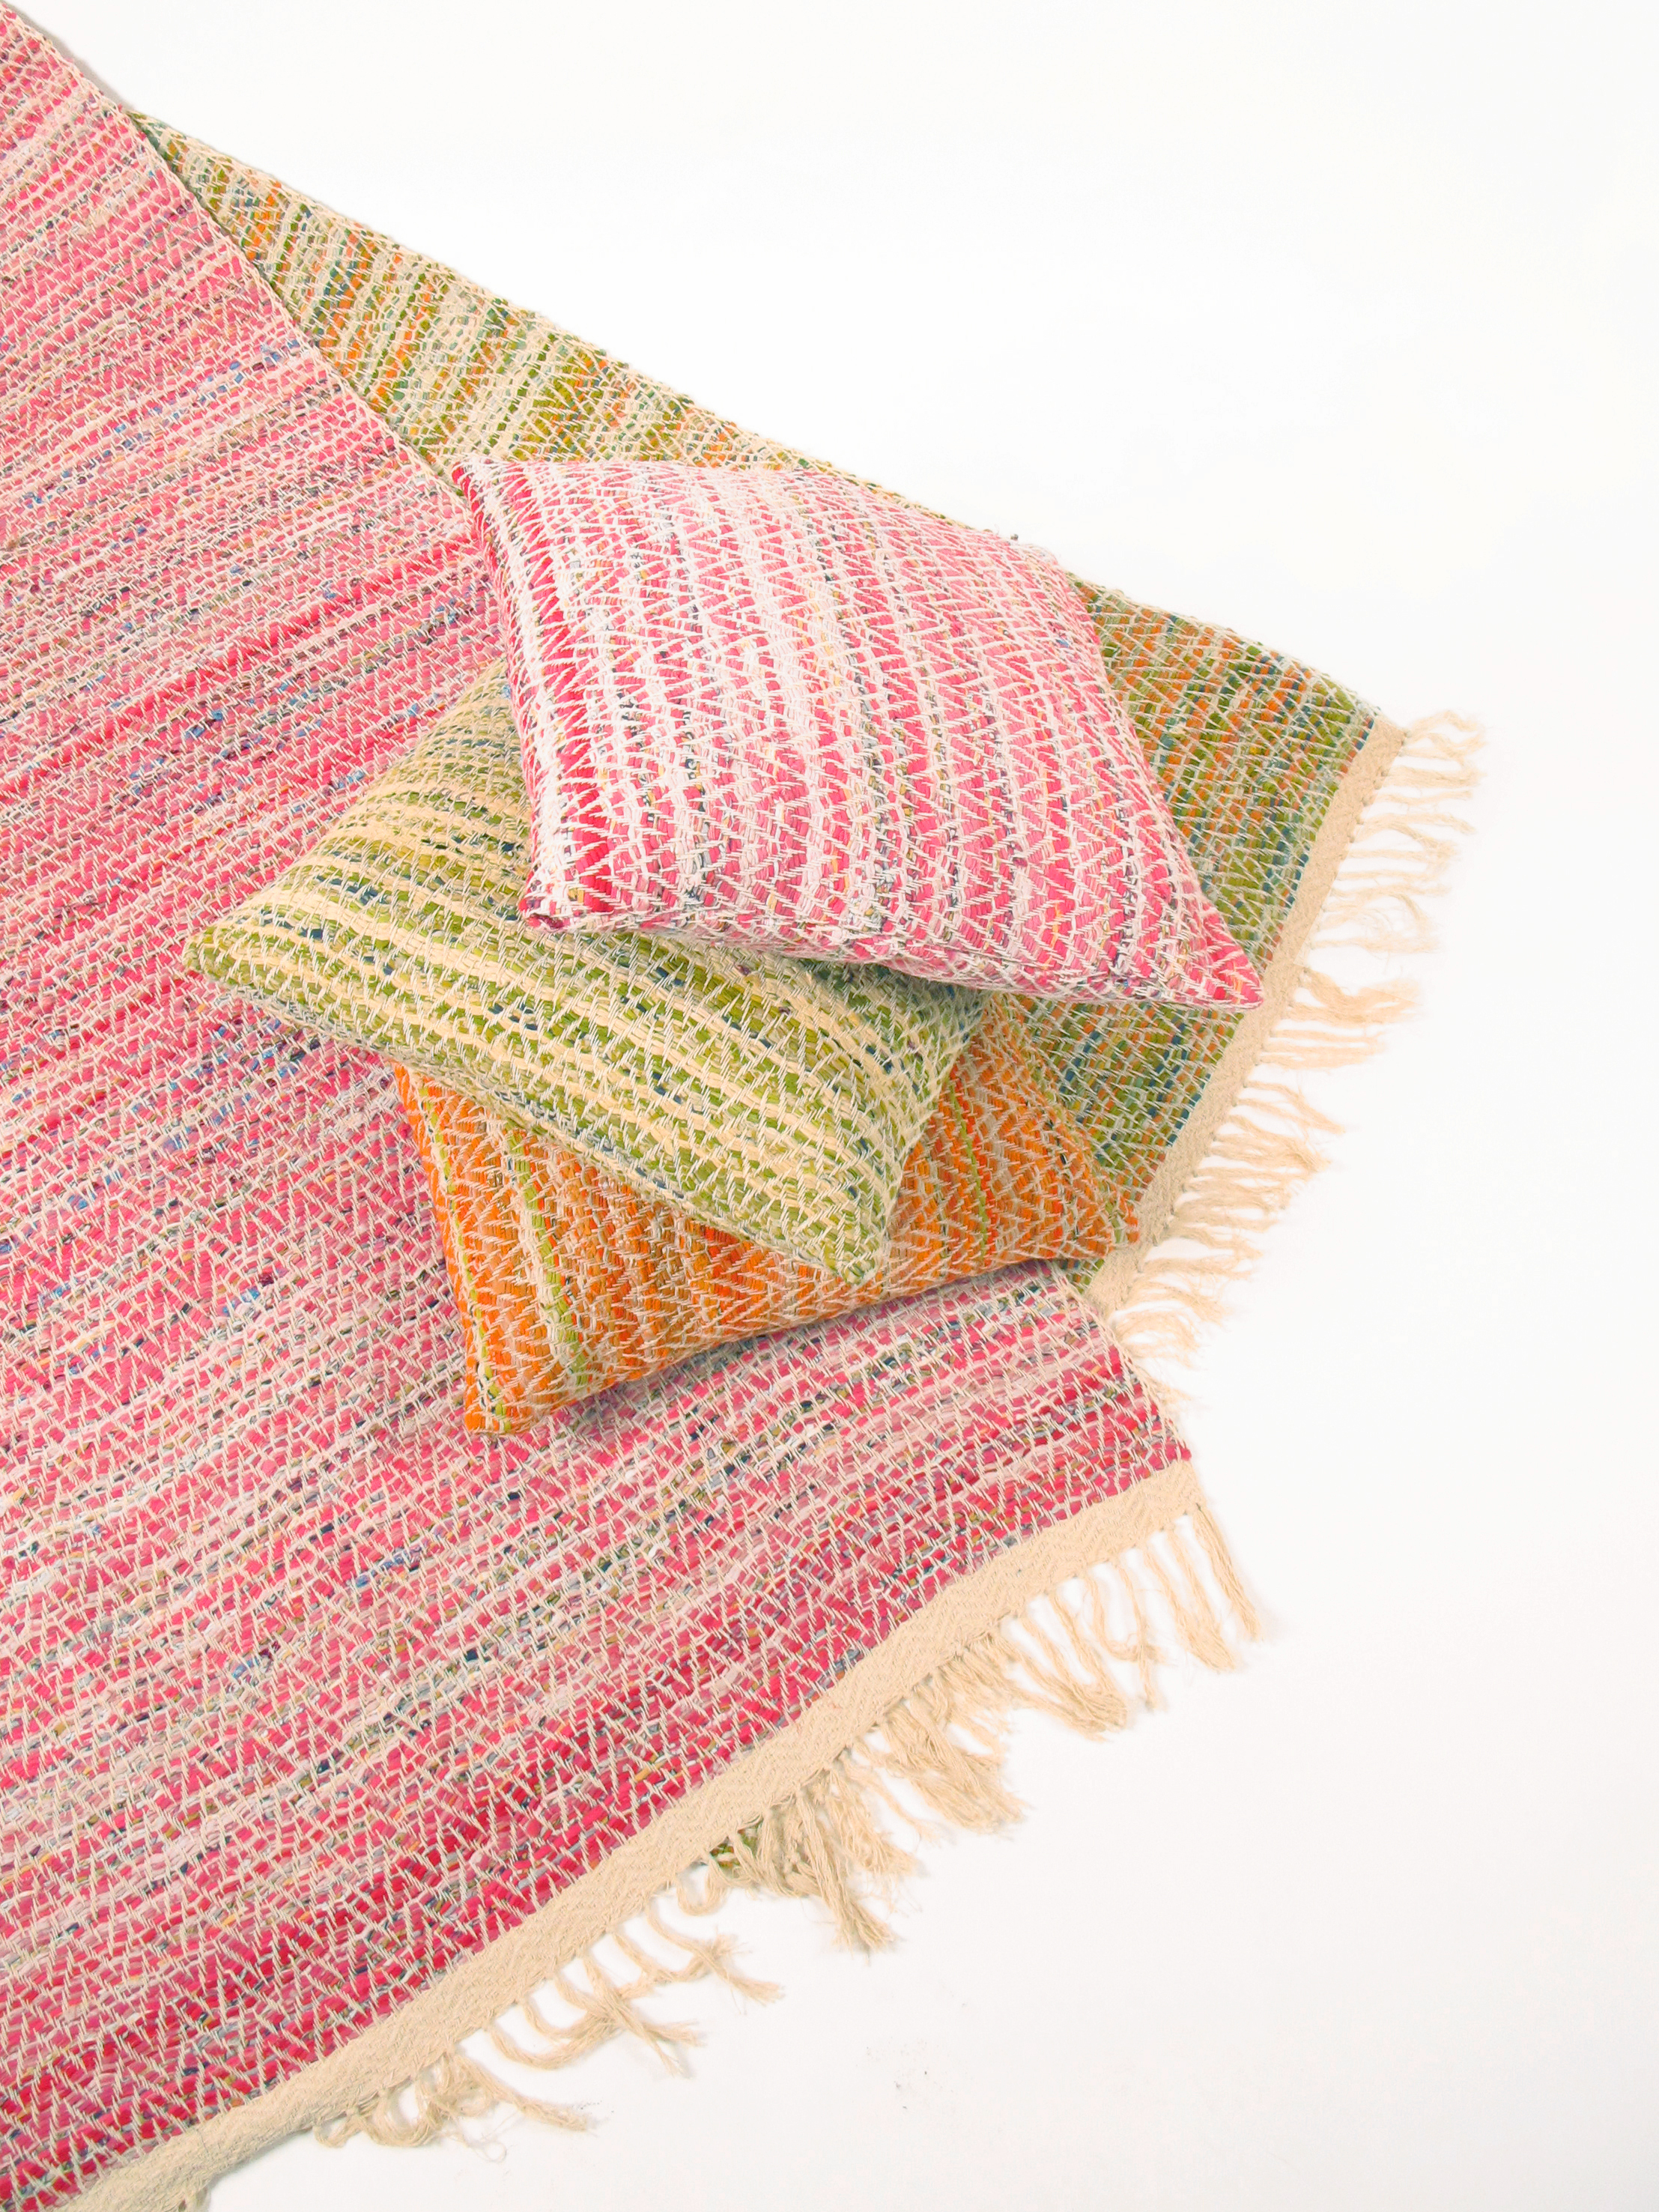 rugs, home, cushions, handmade, crafts, NGO, women, india